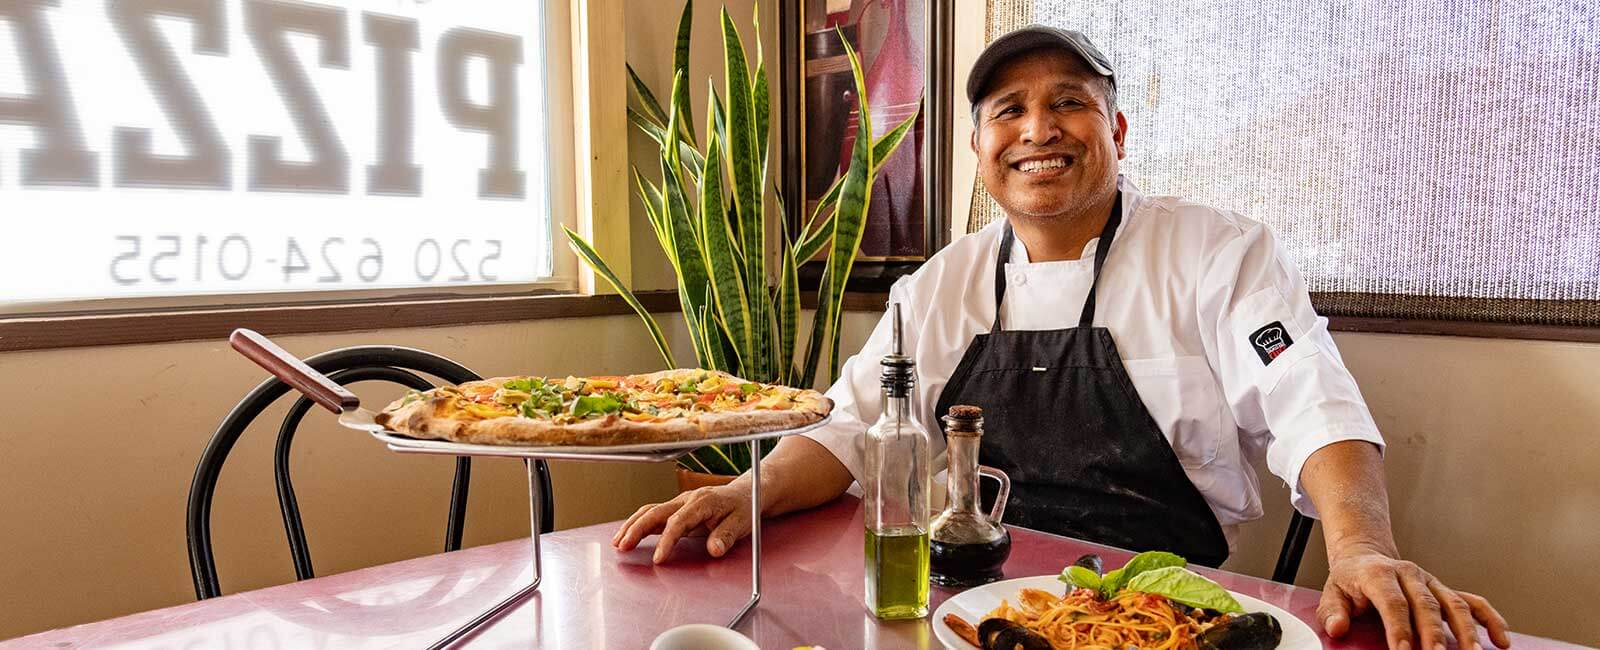 A Hispanic man wearing a white chef's coat and apron sits at a table with a pizza on a stand, a pasta dish and oil and vinegar bottles.